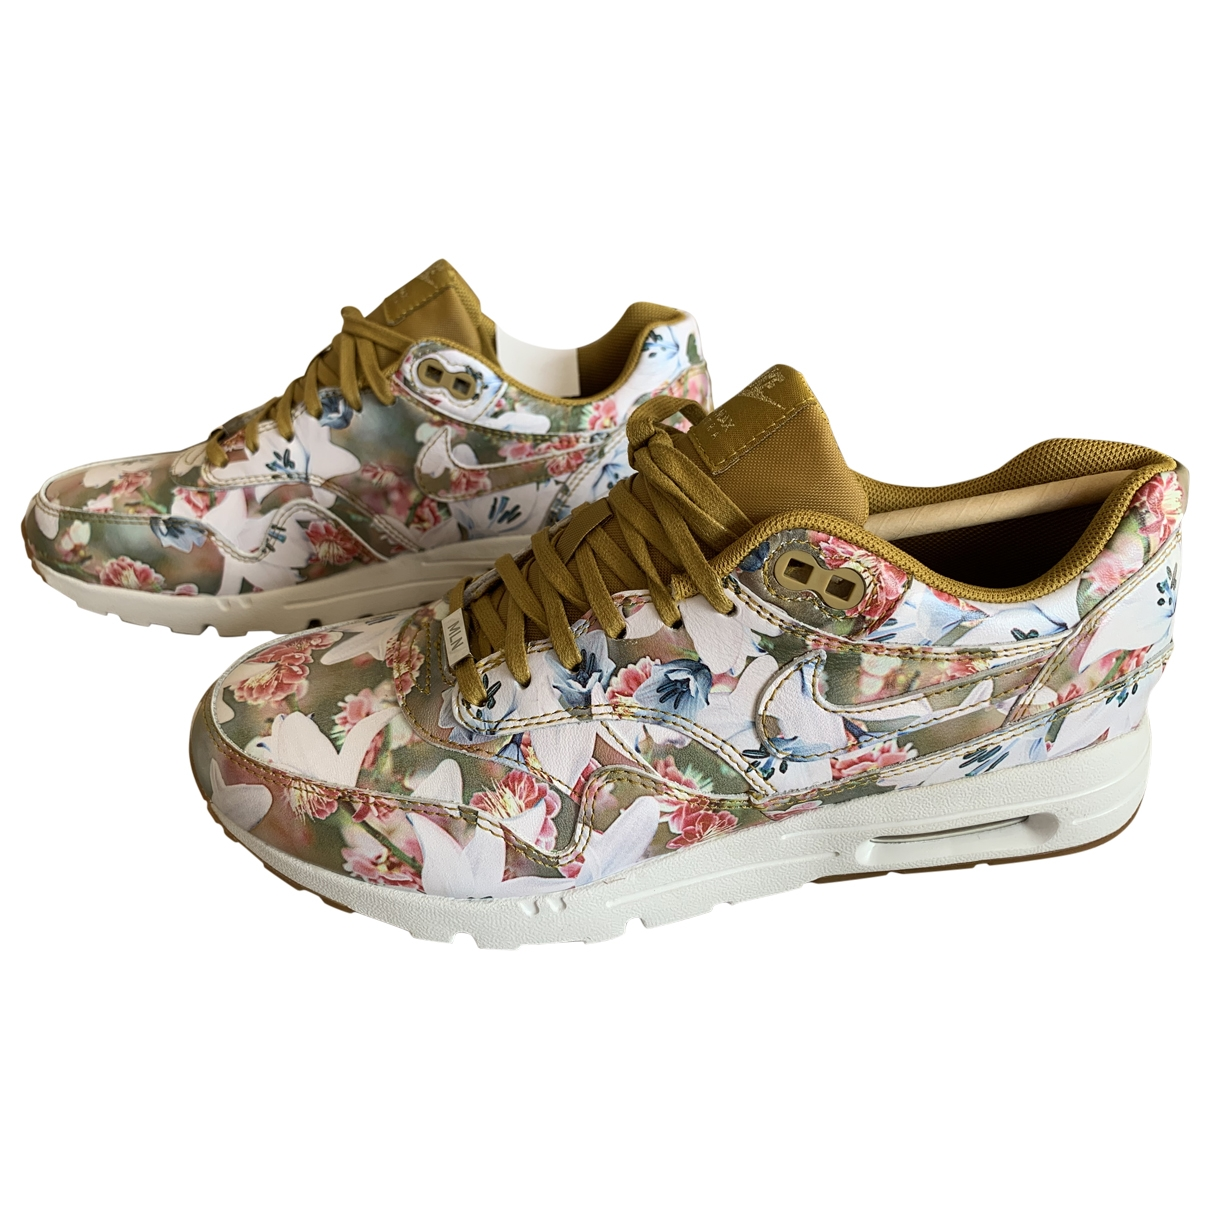 Nike - Baskets Air Max 1 pour femme en cuir - multicolore